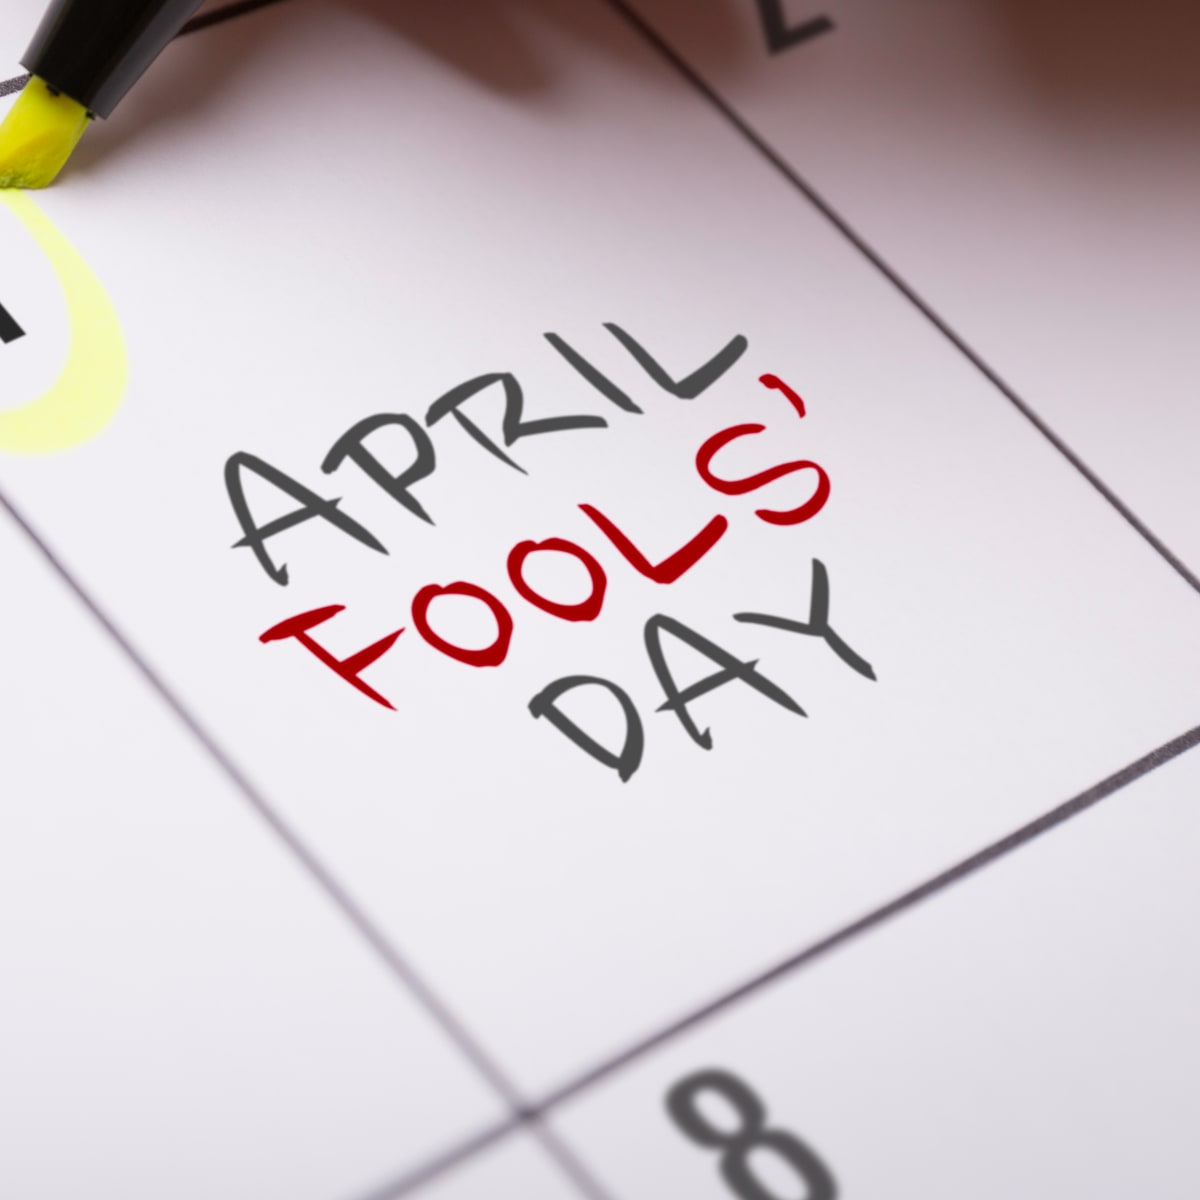 April Fools' Day: Origins, Meaning & Hoaxes - HISTORY